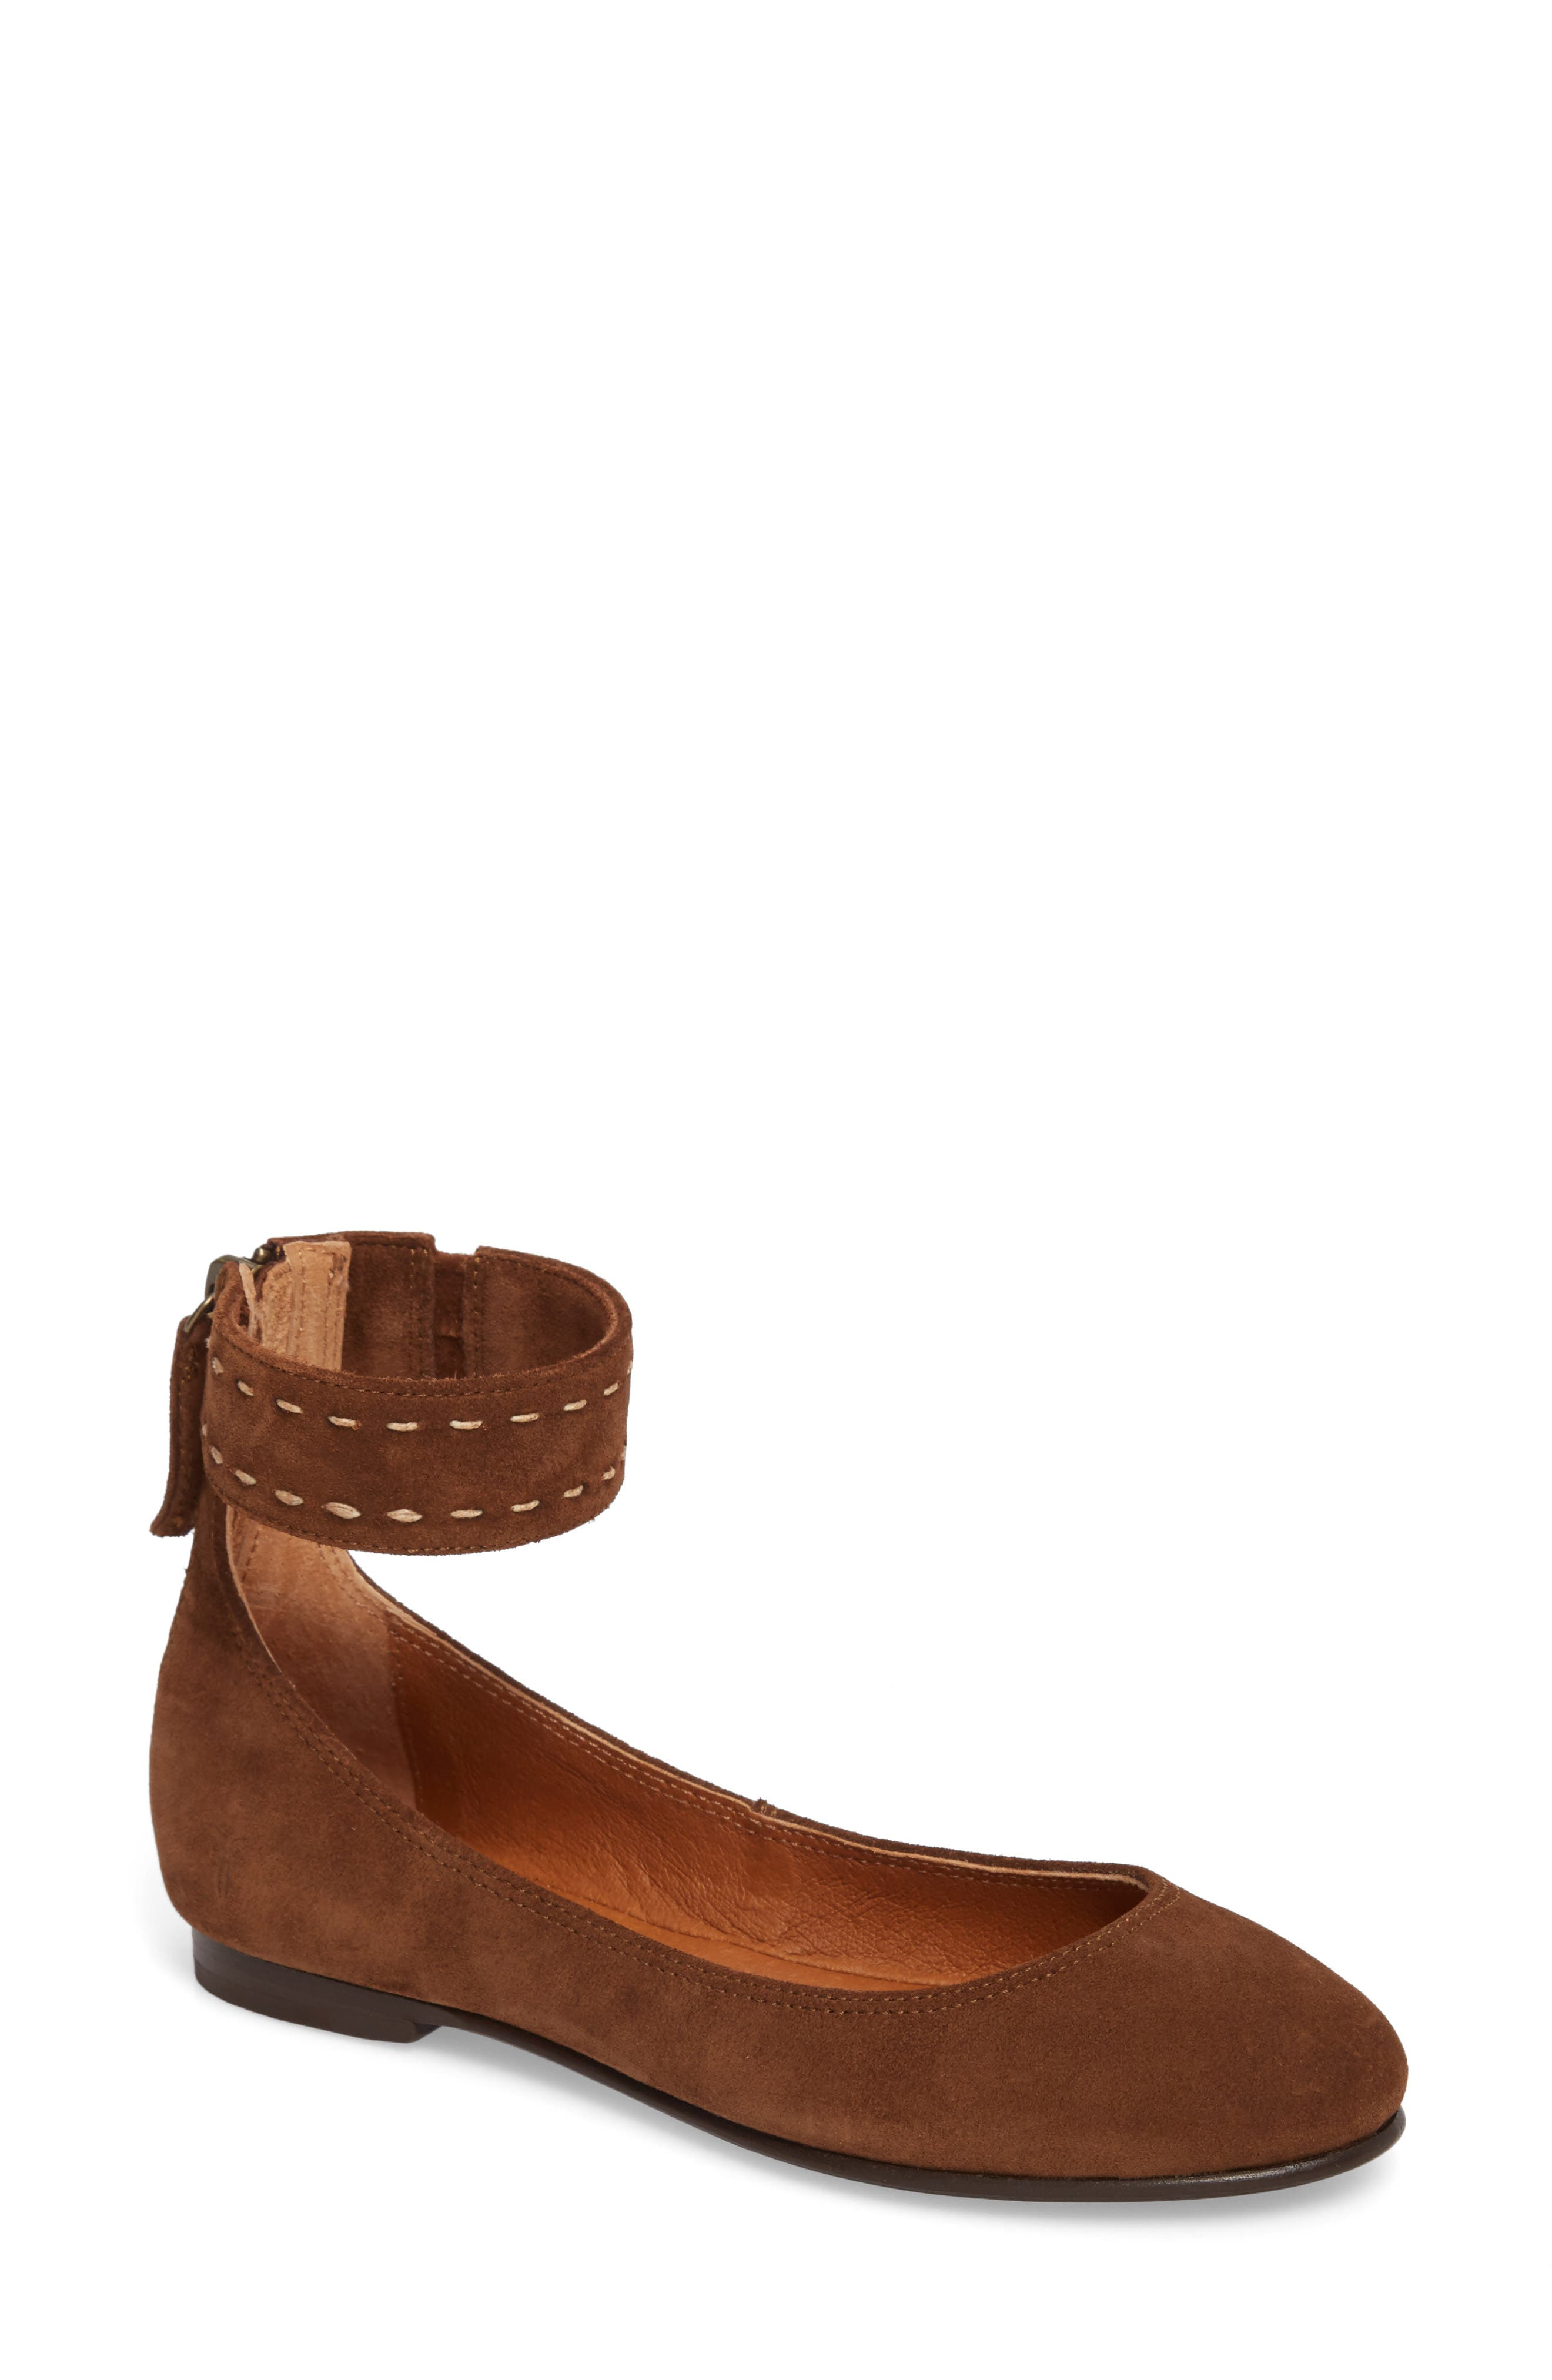 Carson Ankle Strap Ballet Flat,                         Main,                         color, Wood